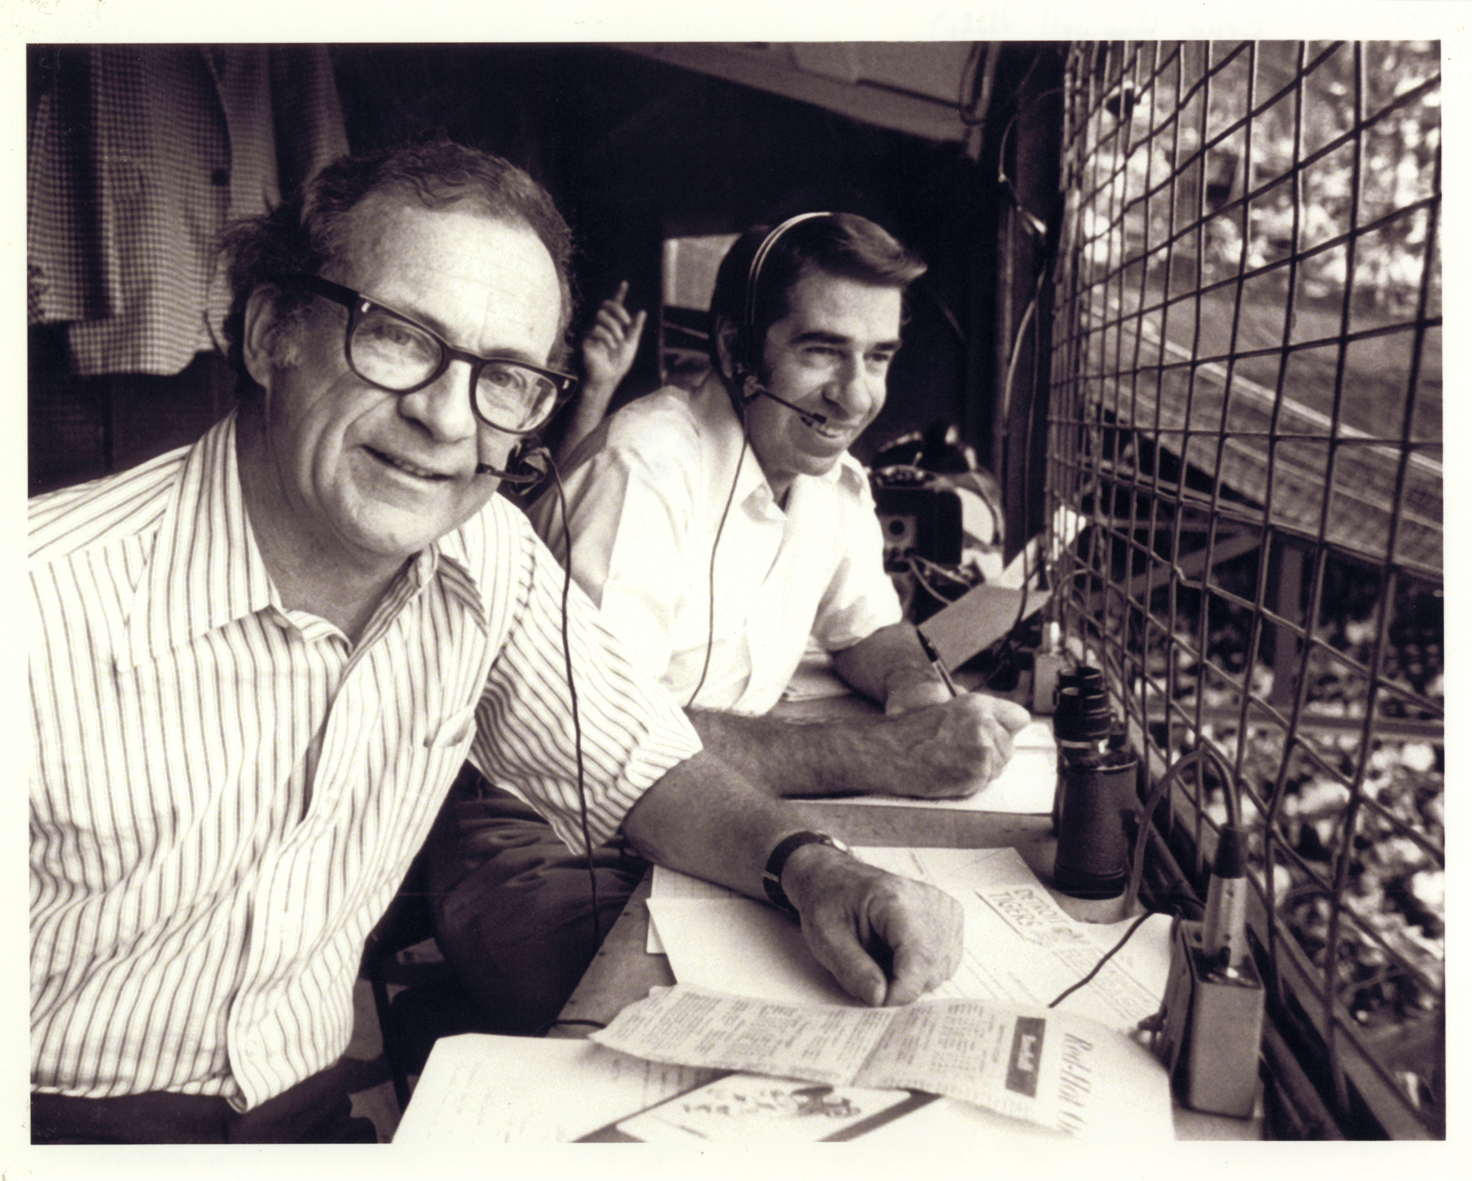 Ernie Harwell and Paul Carey broadcasting a Tigers game.